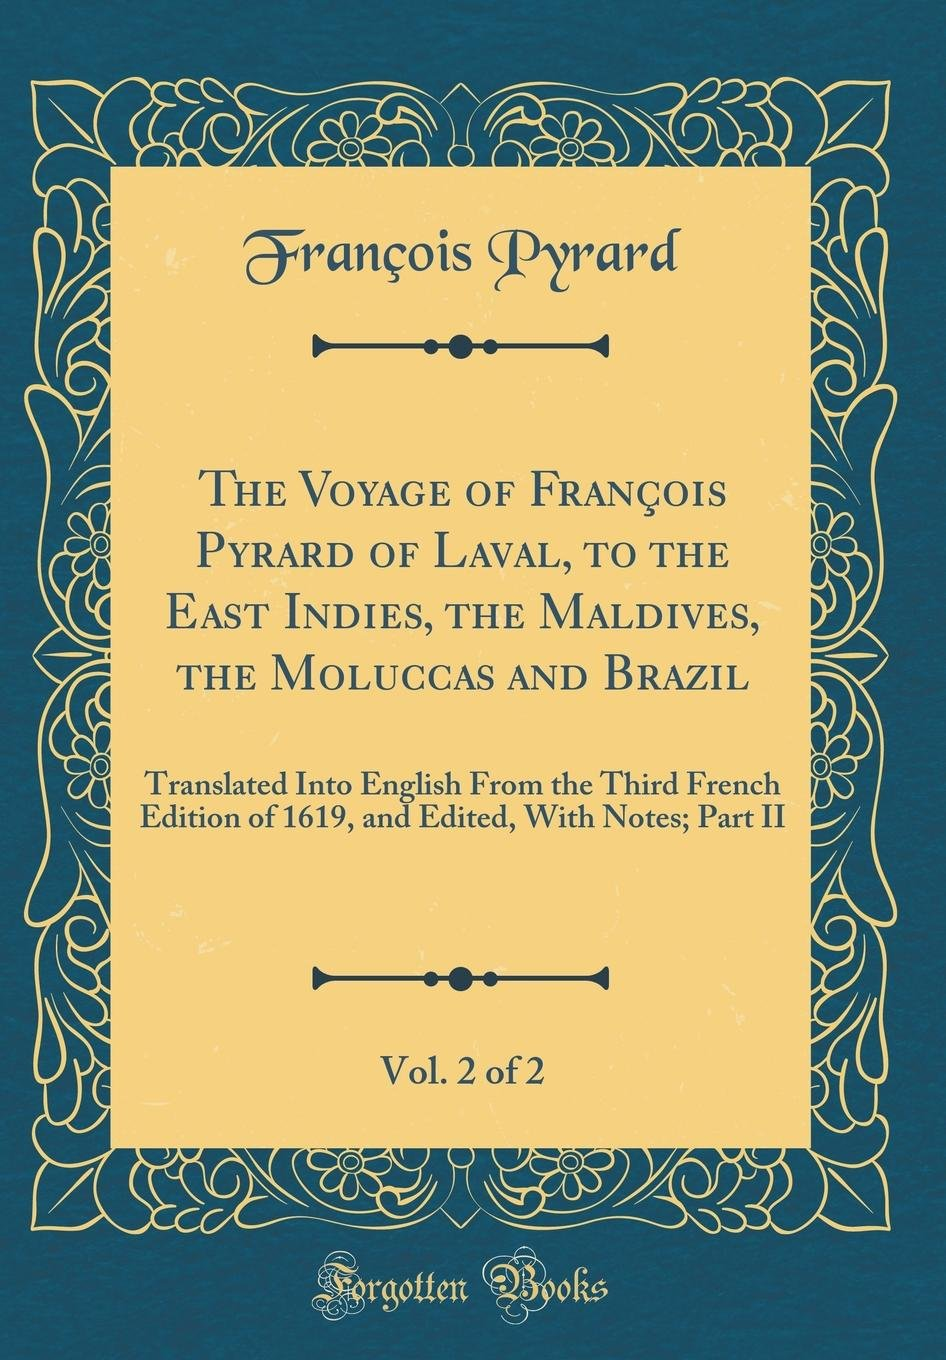 Read Online The Voyage of François Pyrard of Laval, to the East Indies, the Maldives, the Moluccas and Brazil, Vol. 2 of 2: Translated Into English from the Third ... Edited, with Notes; Part II (Classic Reprint) pdf